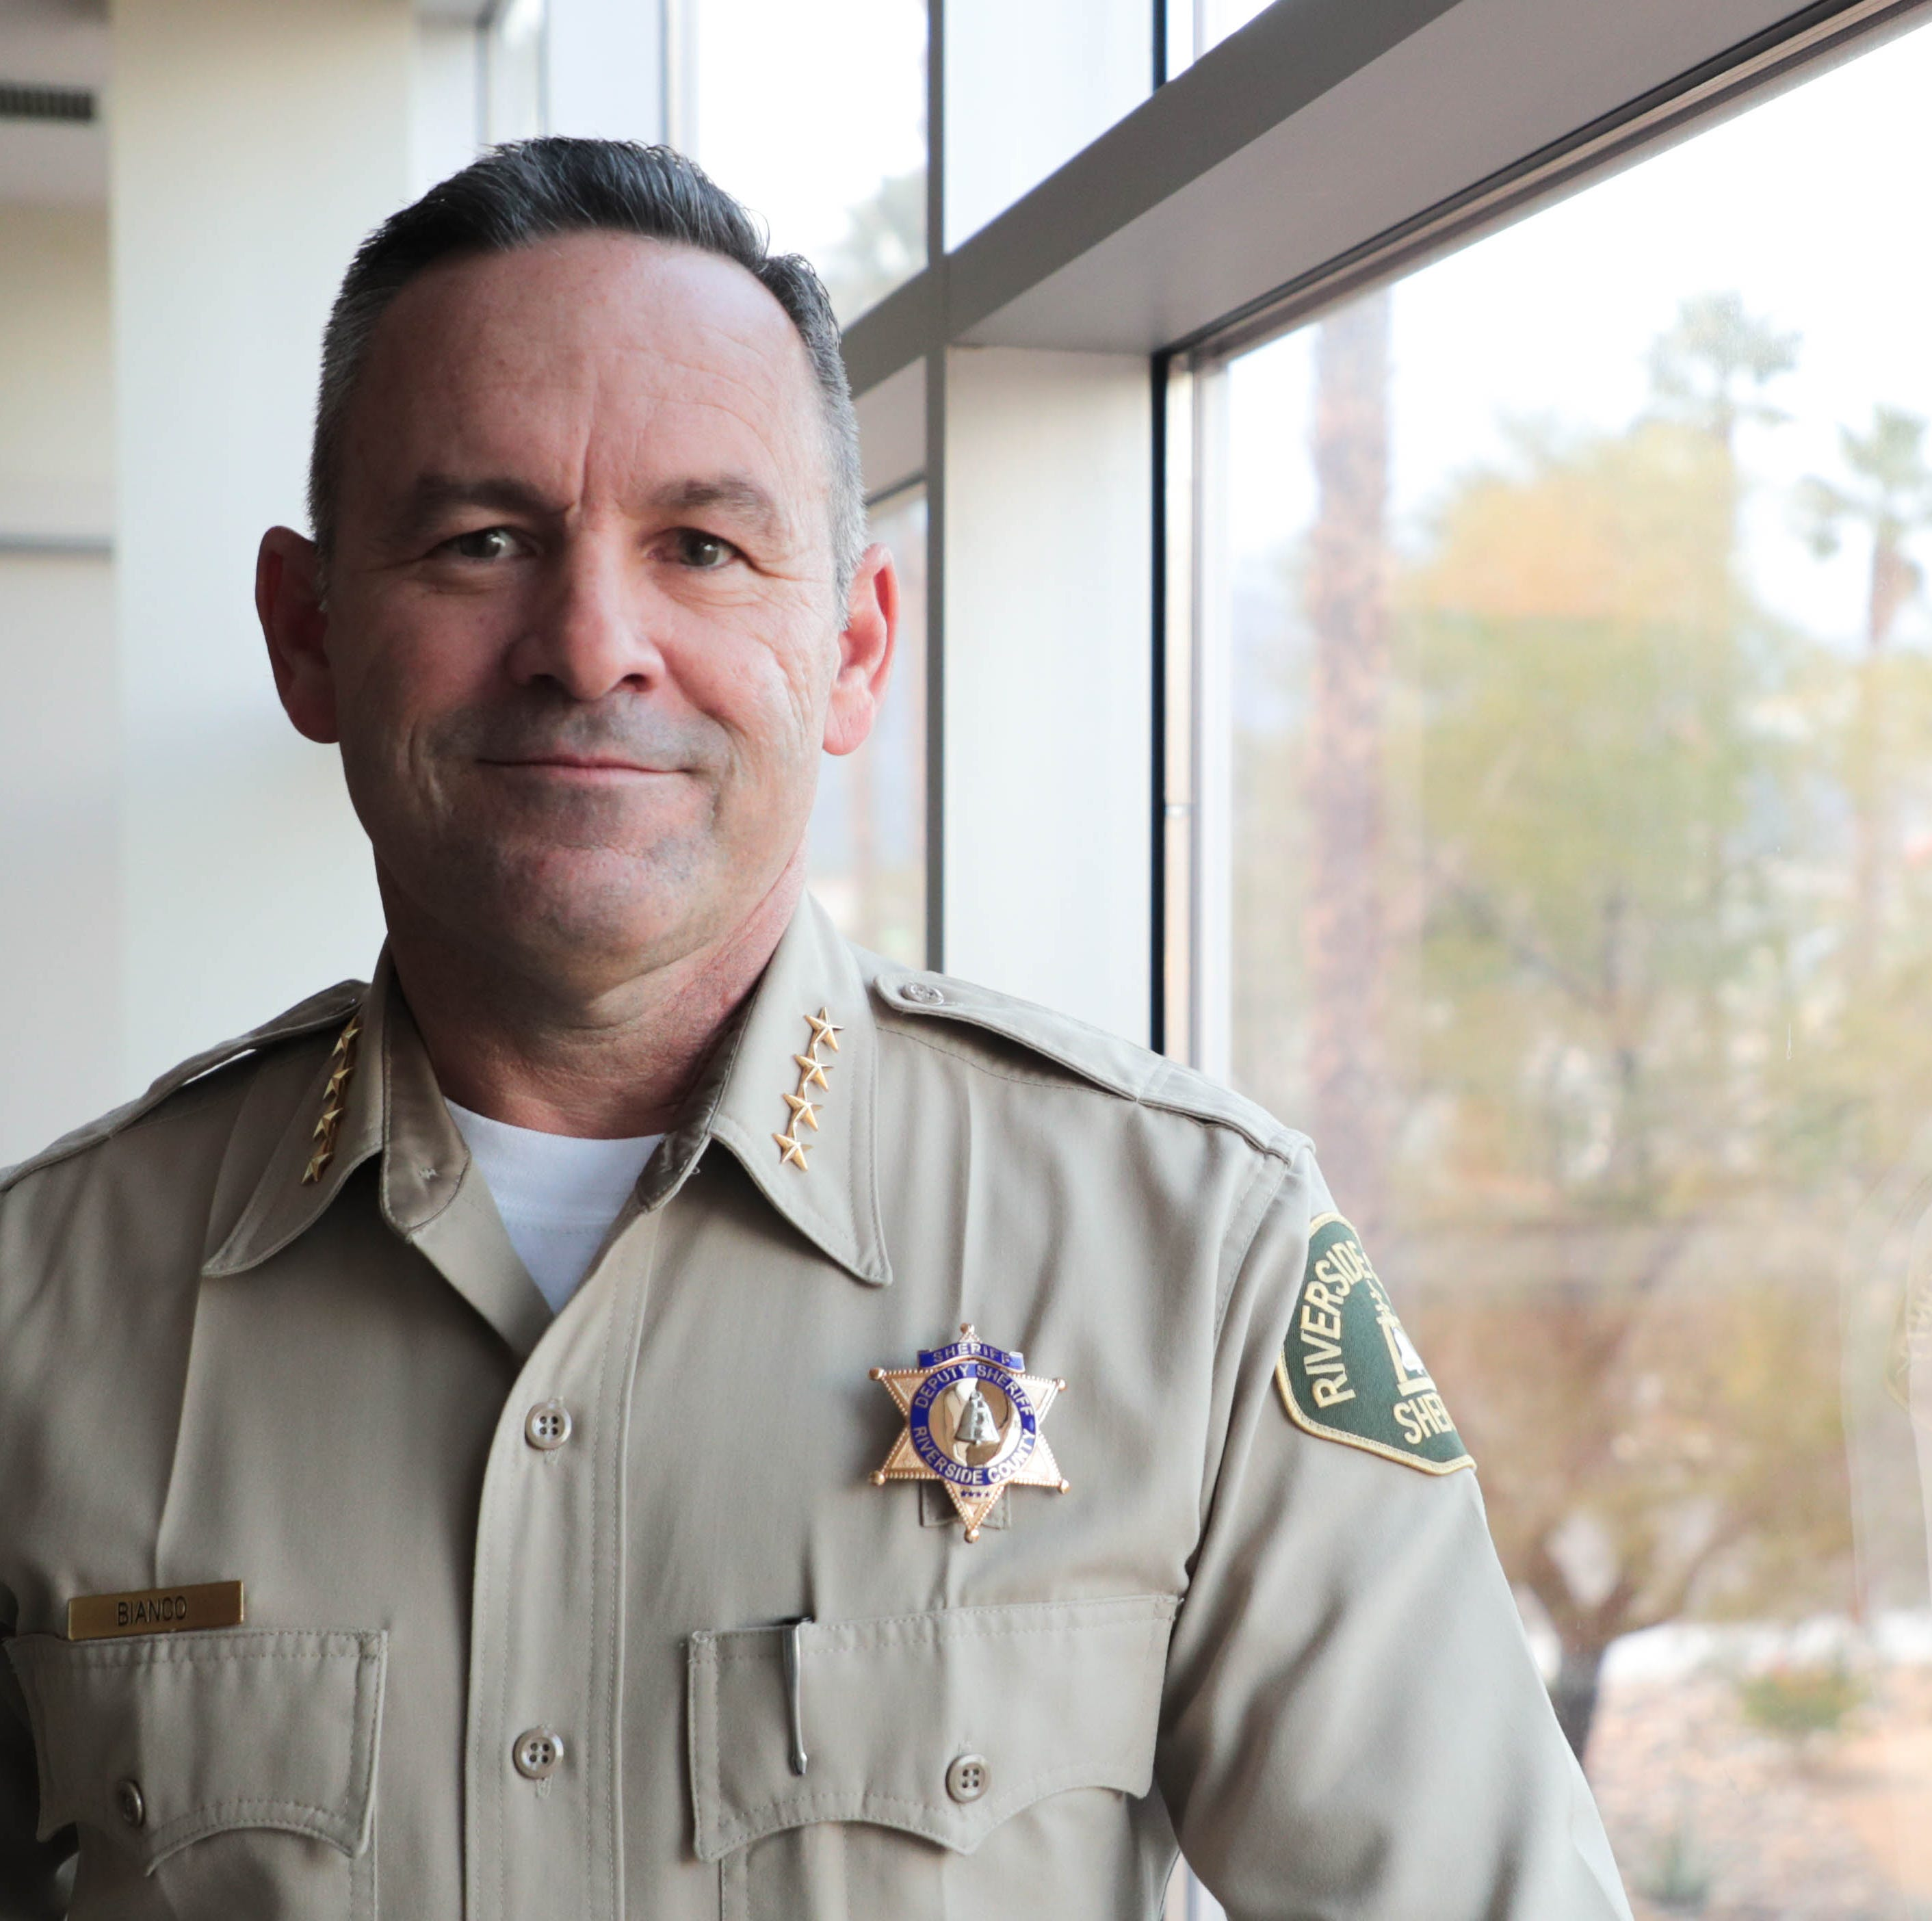 Words matter. 'Lower' only counts if the cost goes down, Riverside County Sheriff Bianco.